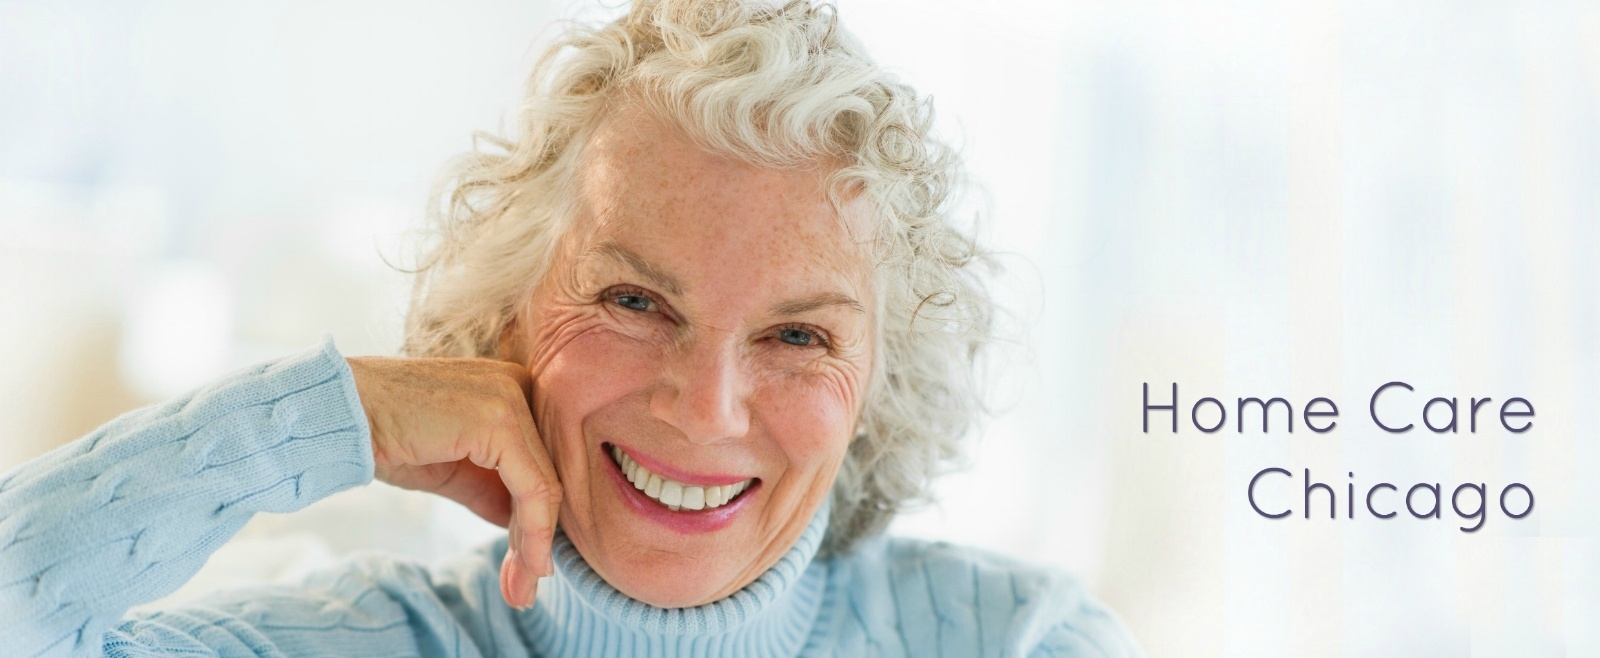 Mature-woman-smiling_Chicago_Home_Care-447171-edited.jpg